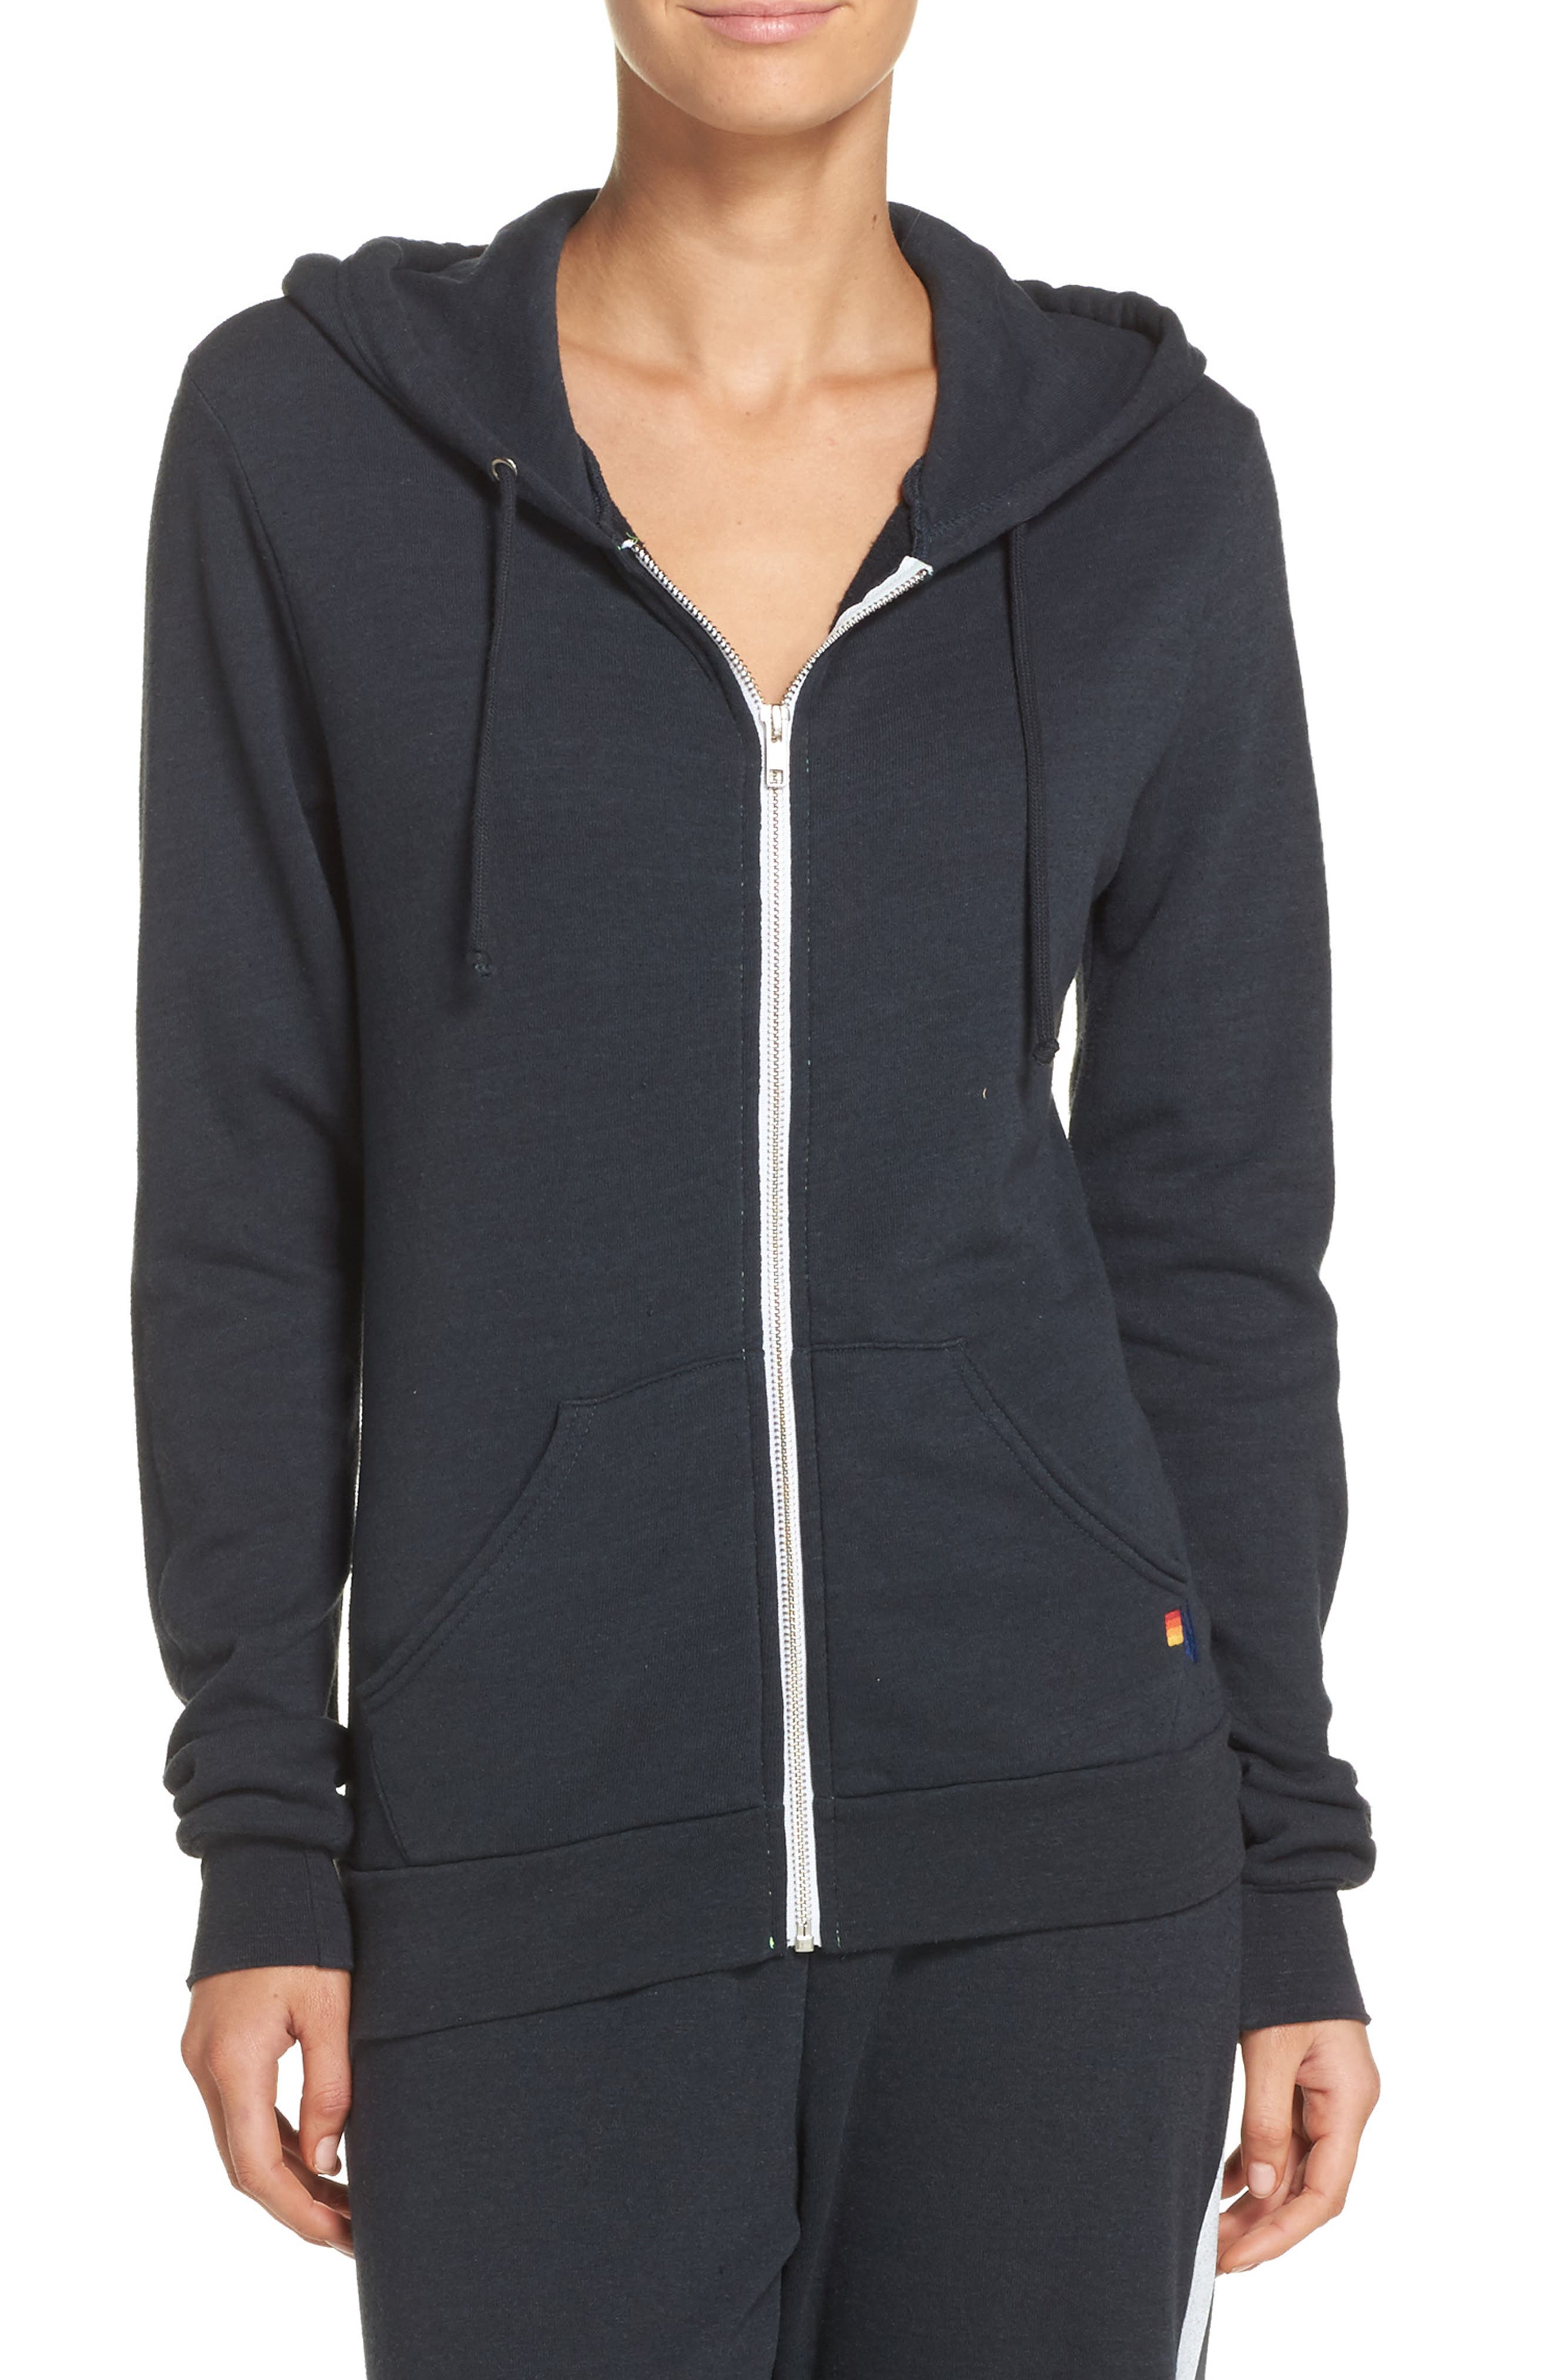 Bolt Zip Hoodie,                         Main,                         color, CHARCOAL